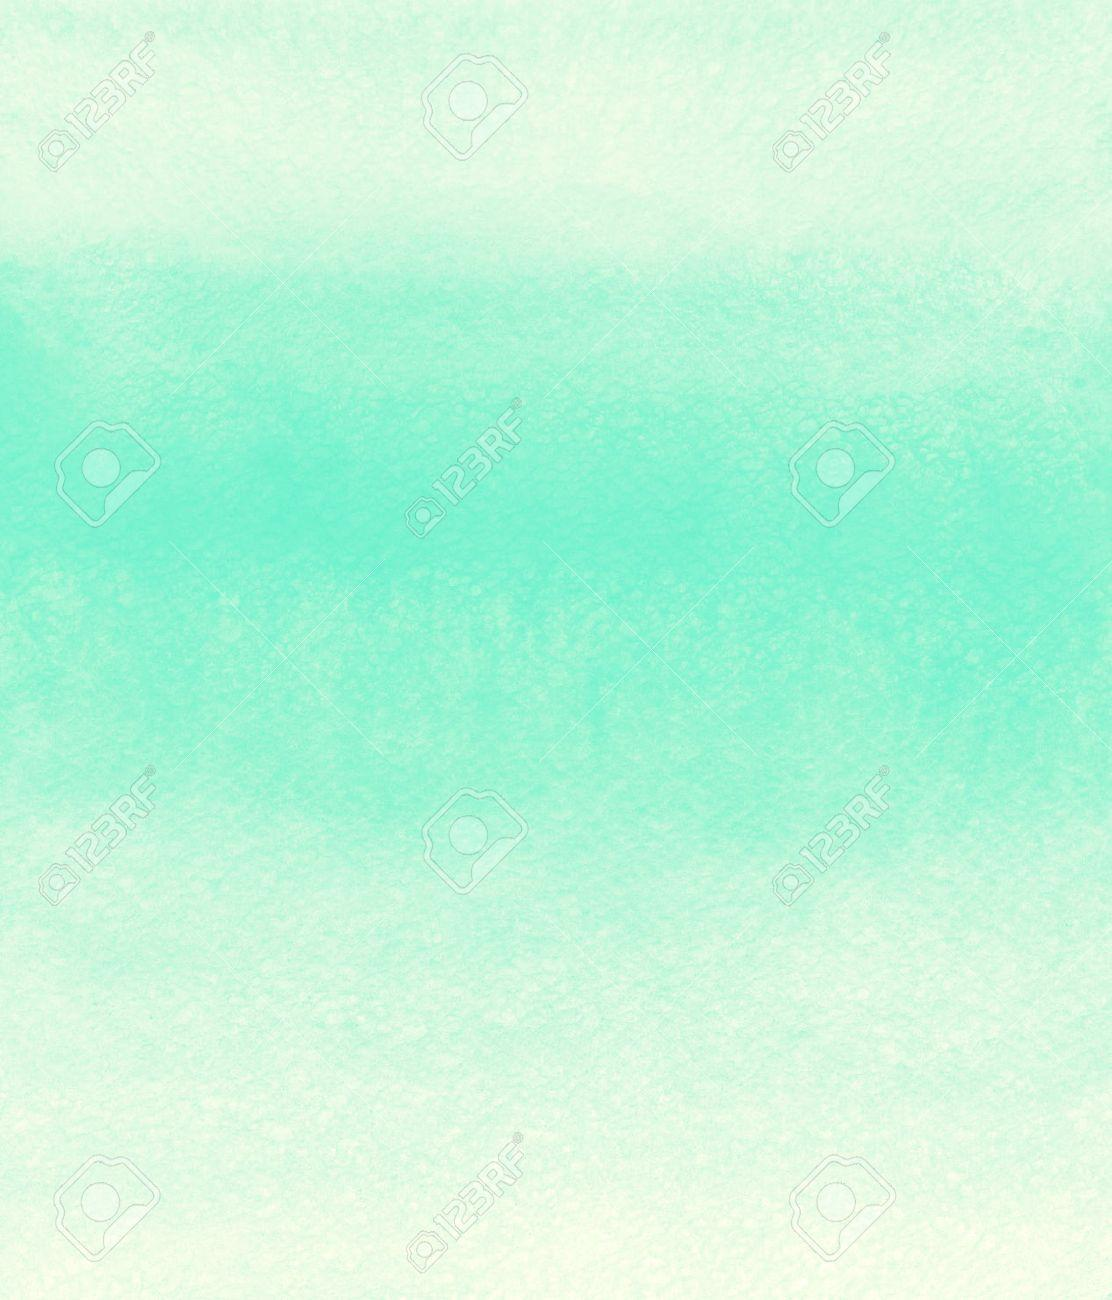 Mint Green Aesthetic Wallpapers Wallpaper Cave Contact mint green on messenger. mint green aesthetic wallpapers